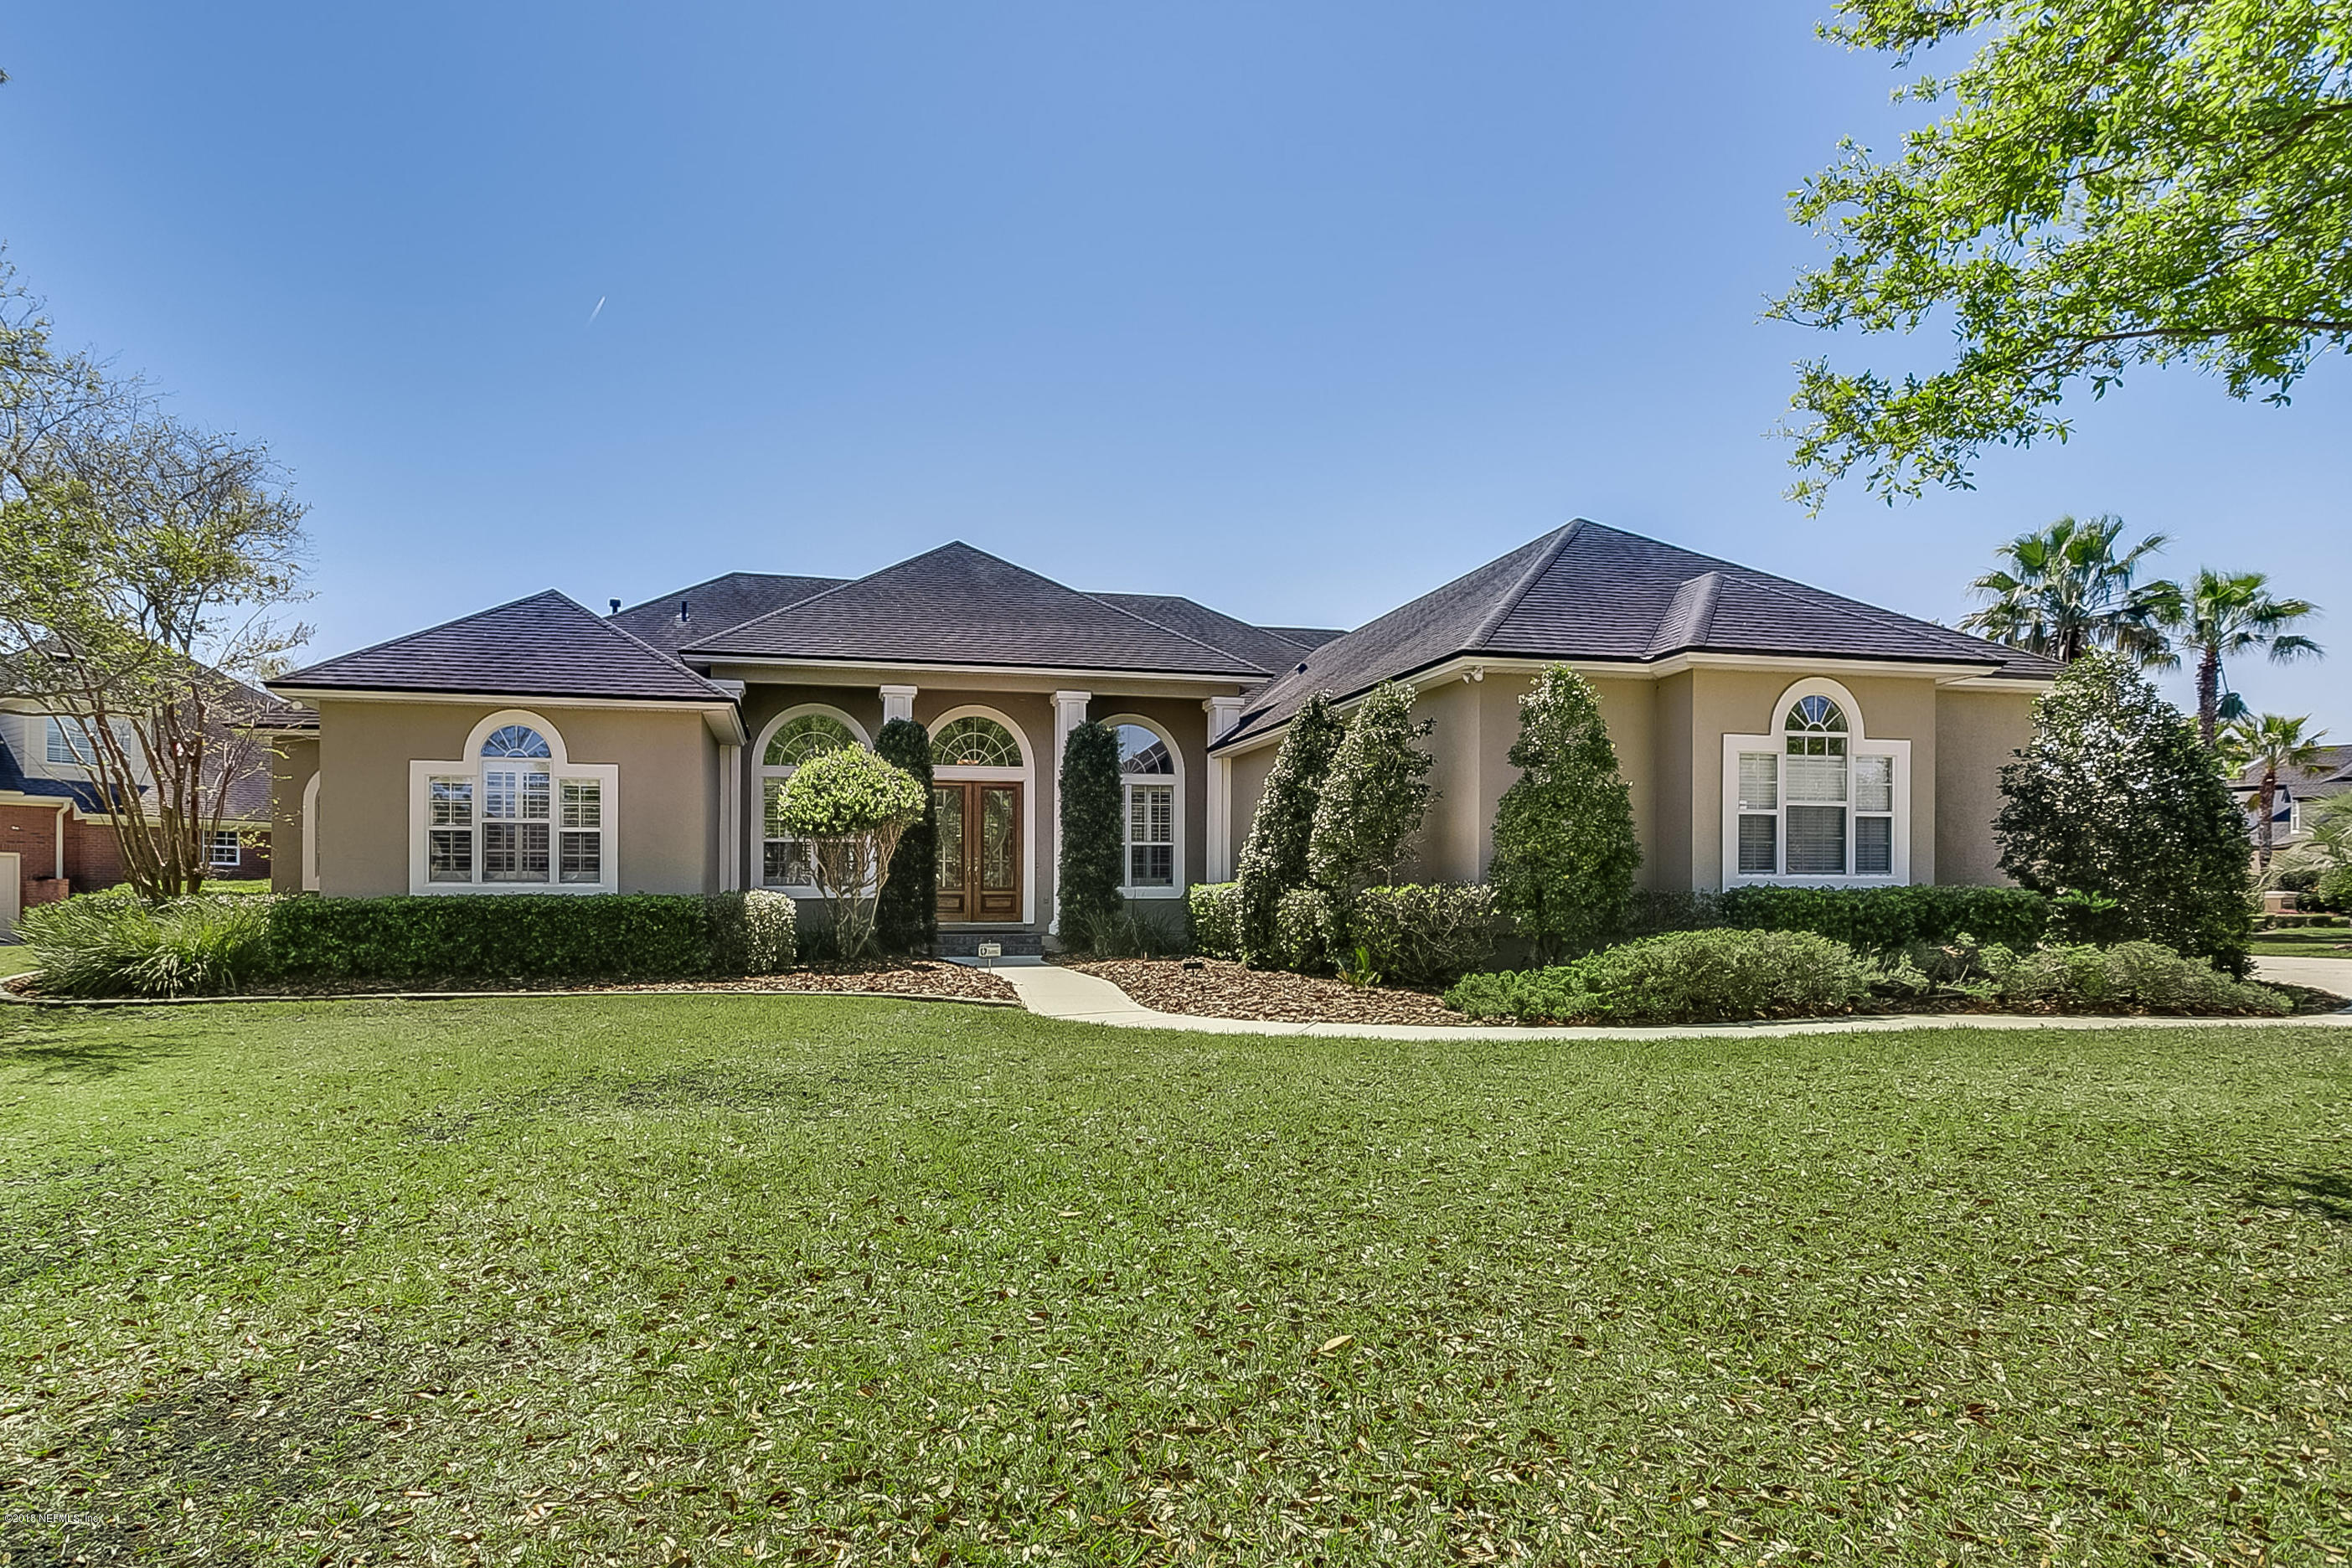 4438 CATHEYS CLUB, JACKSONVILLE, FLORIDA 32224, 4 Bedrooms Bedrooms, ,4 BathroomsBathrooms,Residential - single family,For sale,CATHEYS CLUB,955401